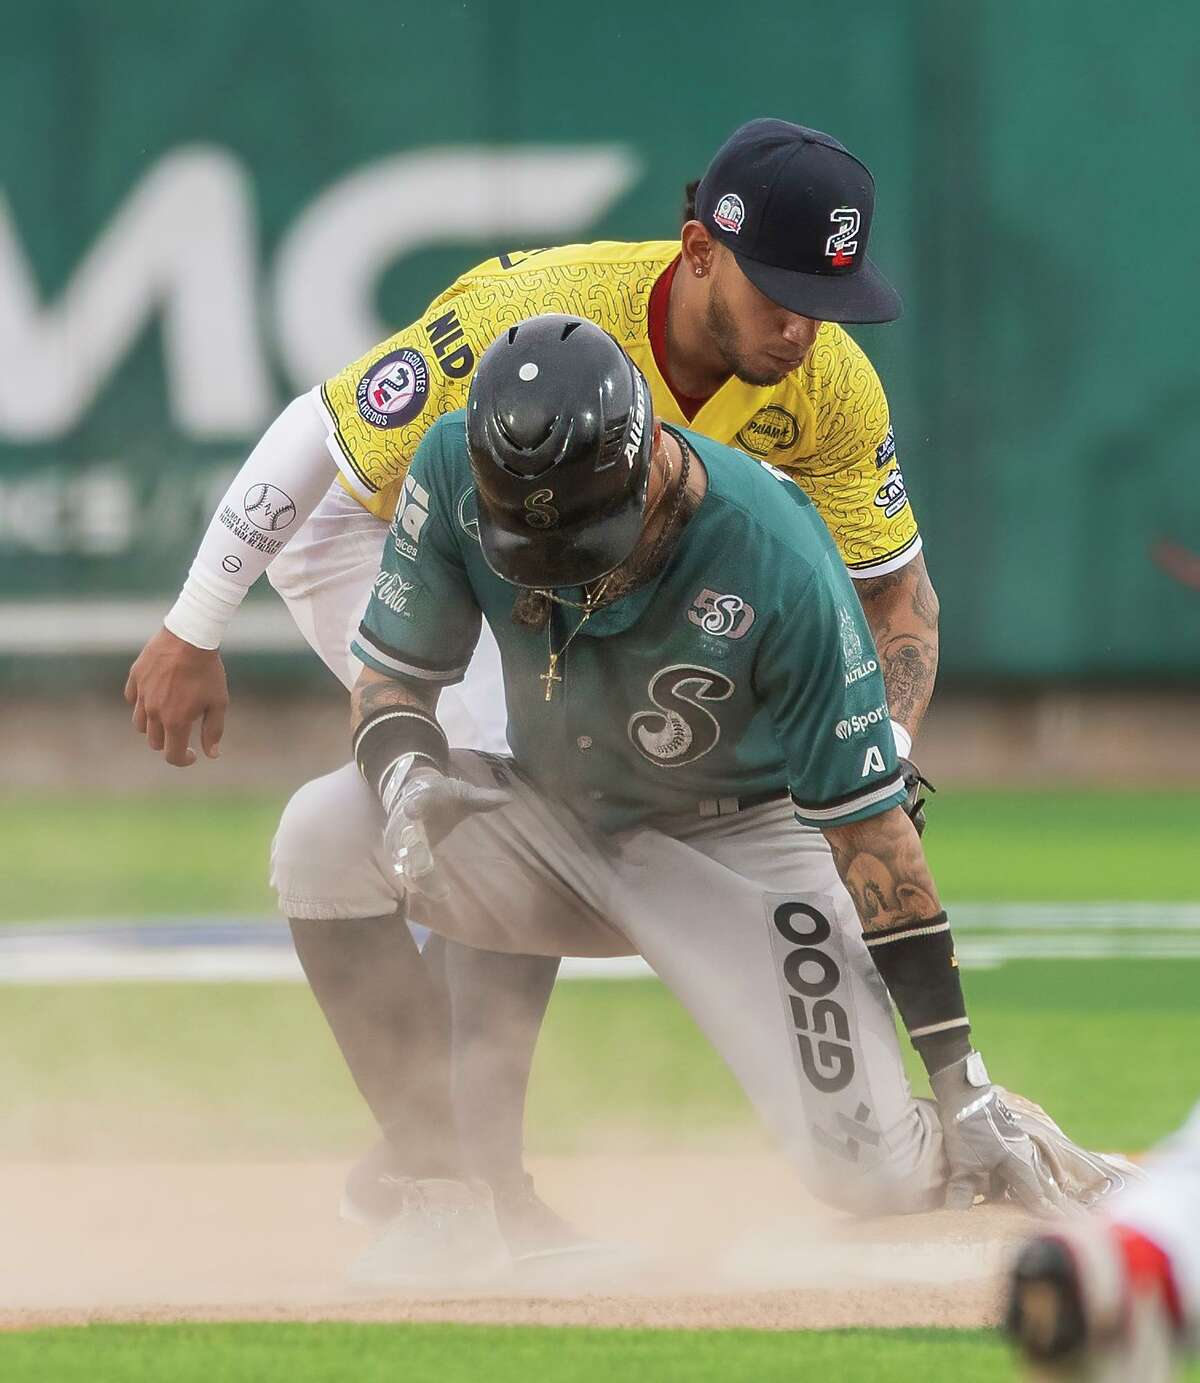 Tecolotes Dos Laredos Luis Diego Rodriguez goes for the out at second base during a game against Saraperos de Saltillo, Thursday, Aug. 5, 2021 at Uni-Trade Stadium.